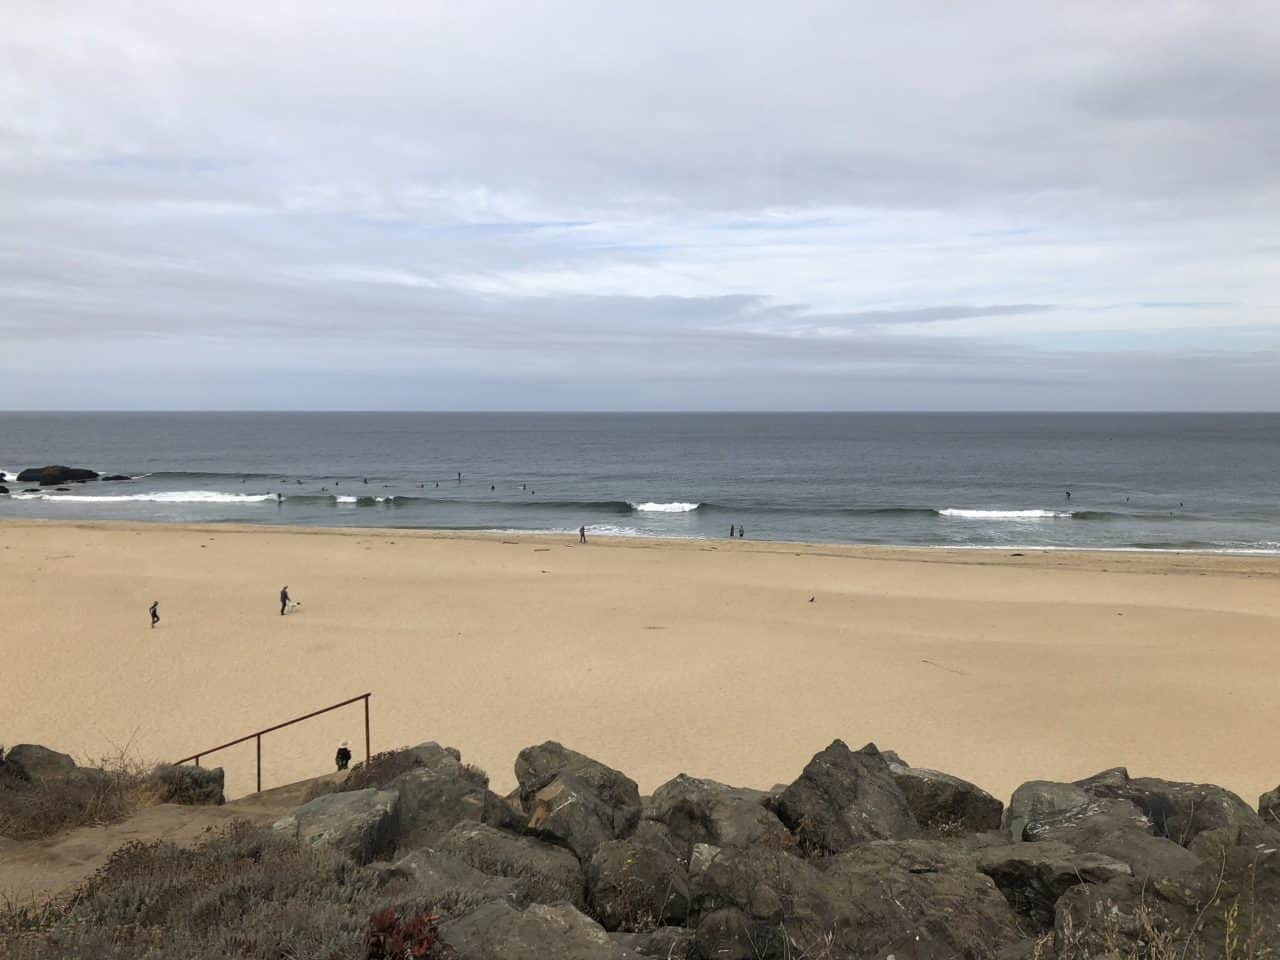 Sand and surfers at Montara State Beach.